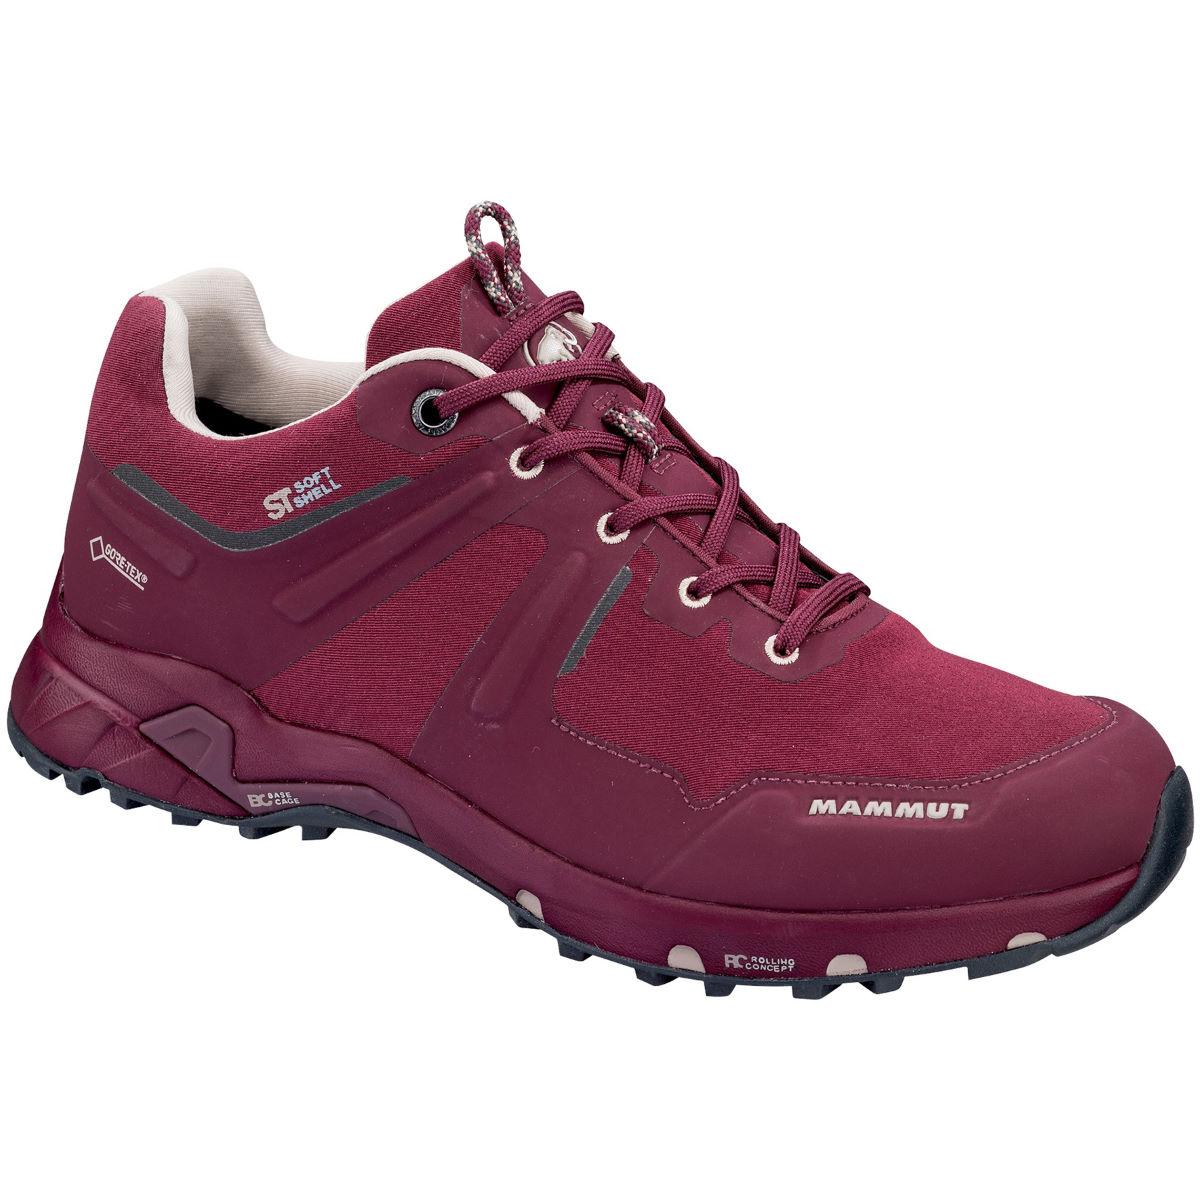 mammut Mammut Ultimate Pro Low GTX Womens Shoes   Shoes